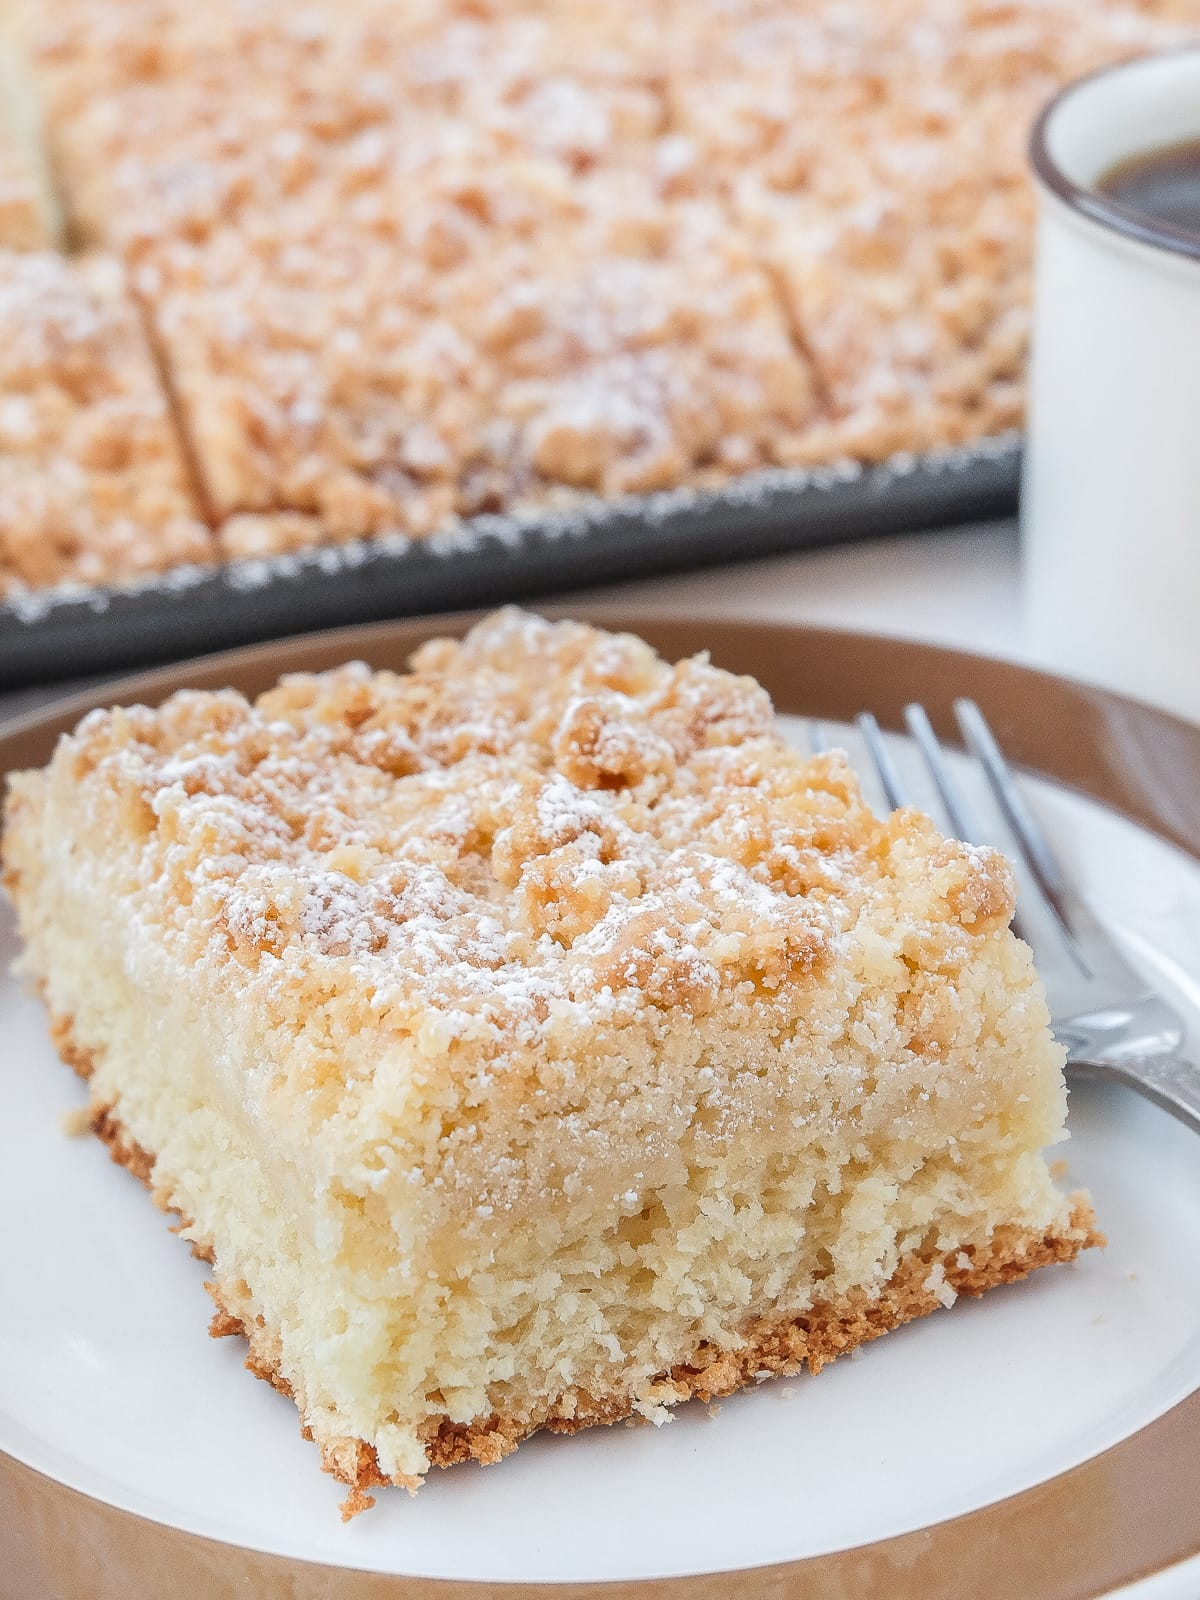 piece of coffee cake with streusel on plate with brown rim and cake in background